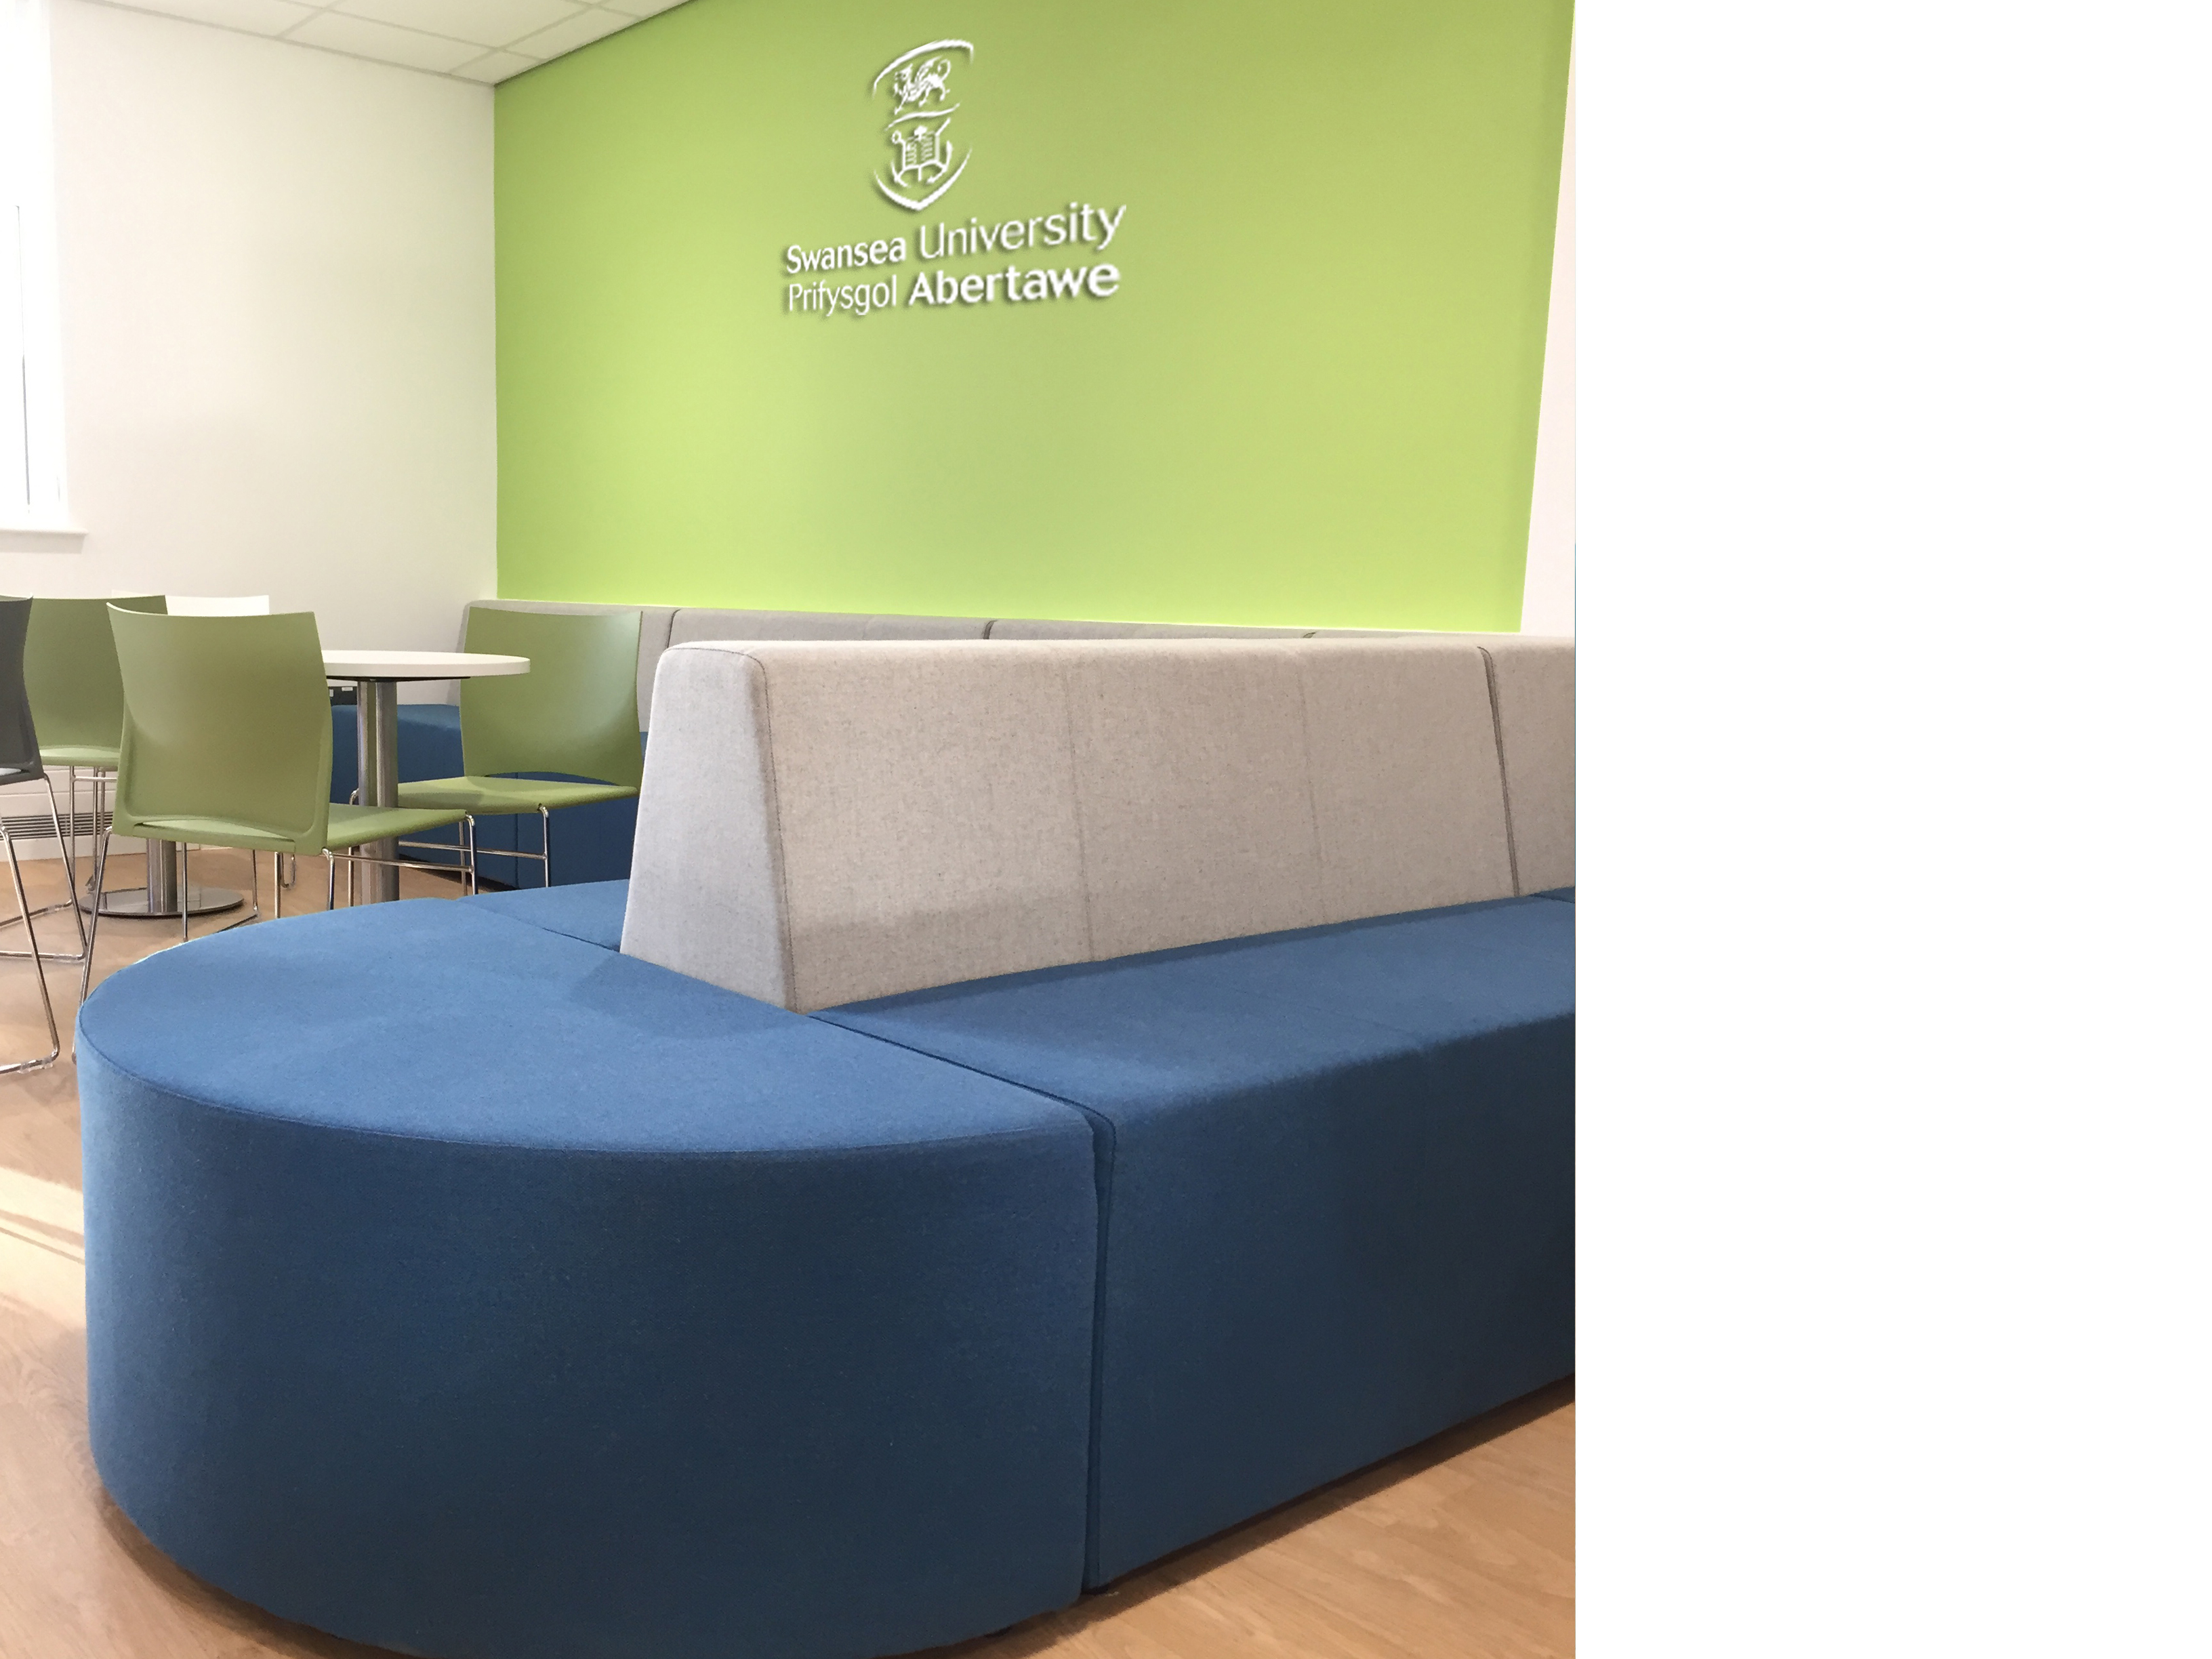 Swansea University Health & Wellbeing Academy